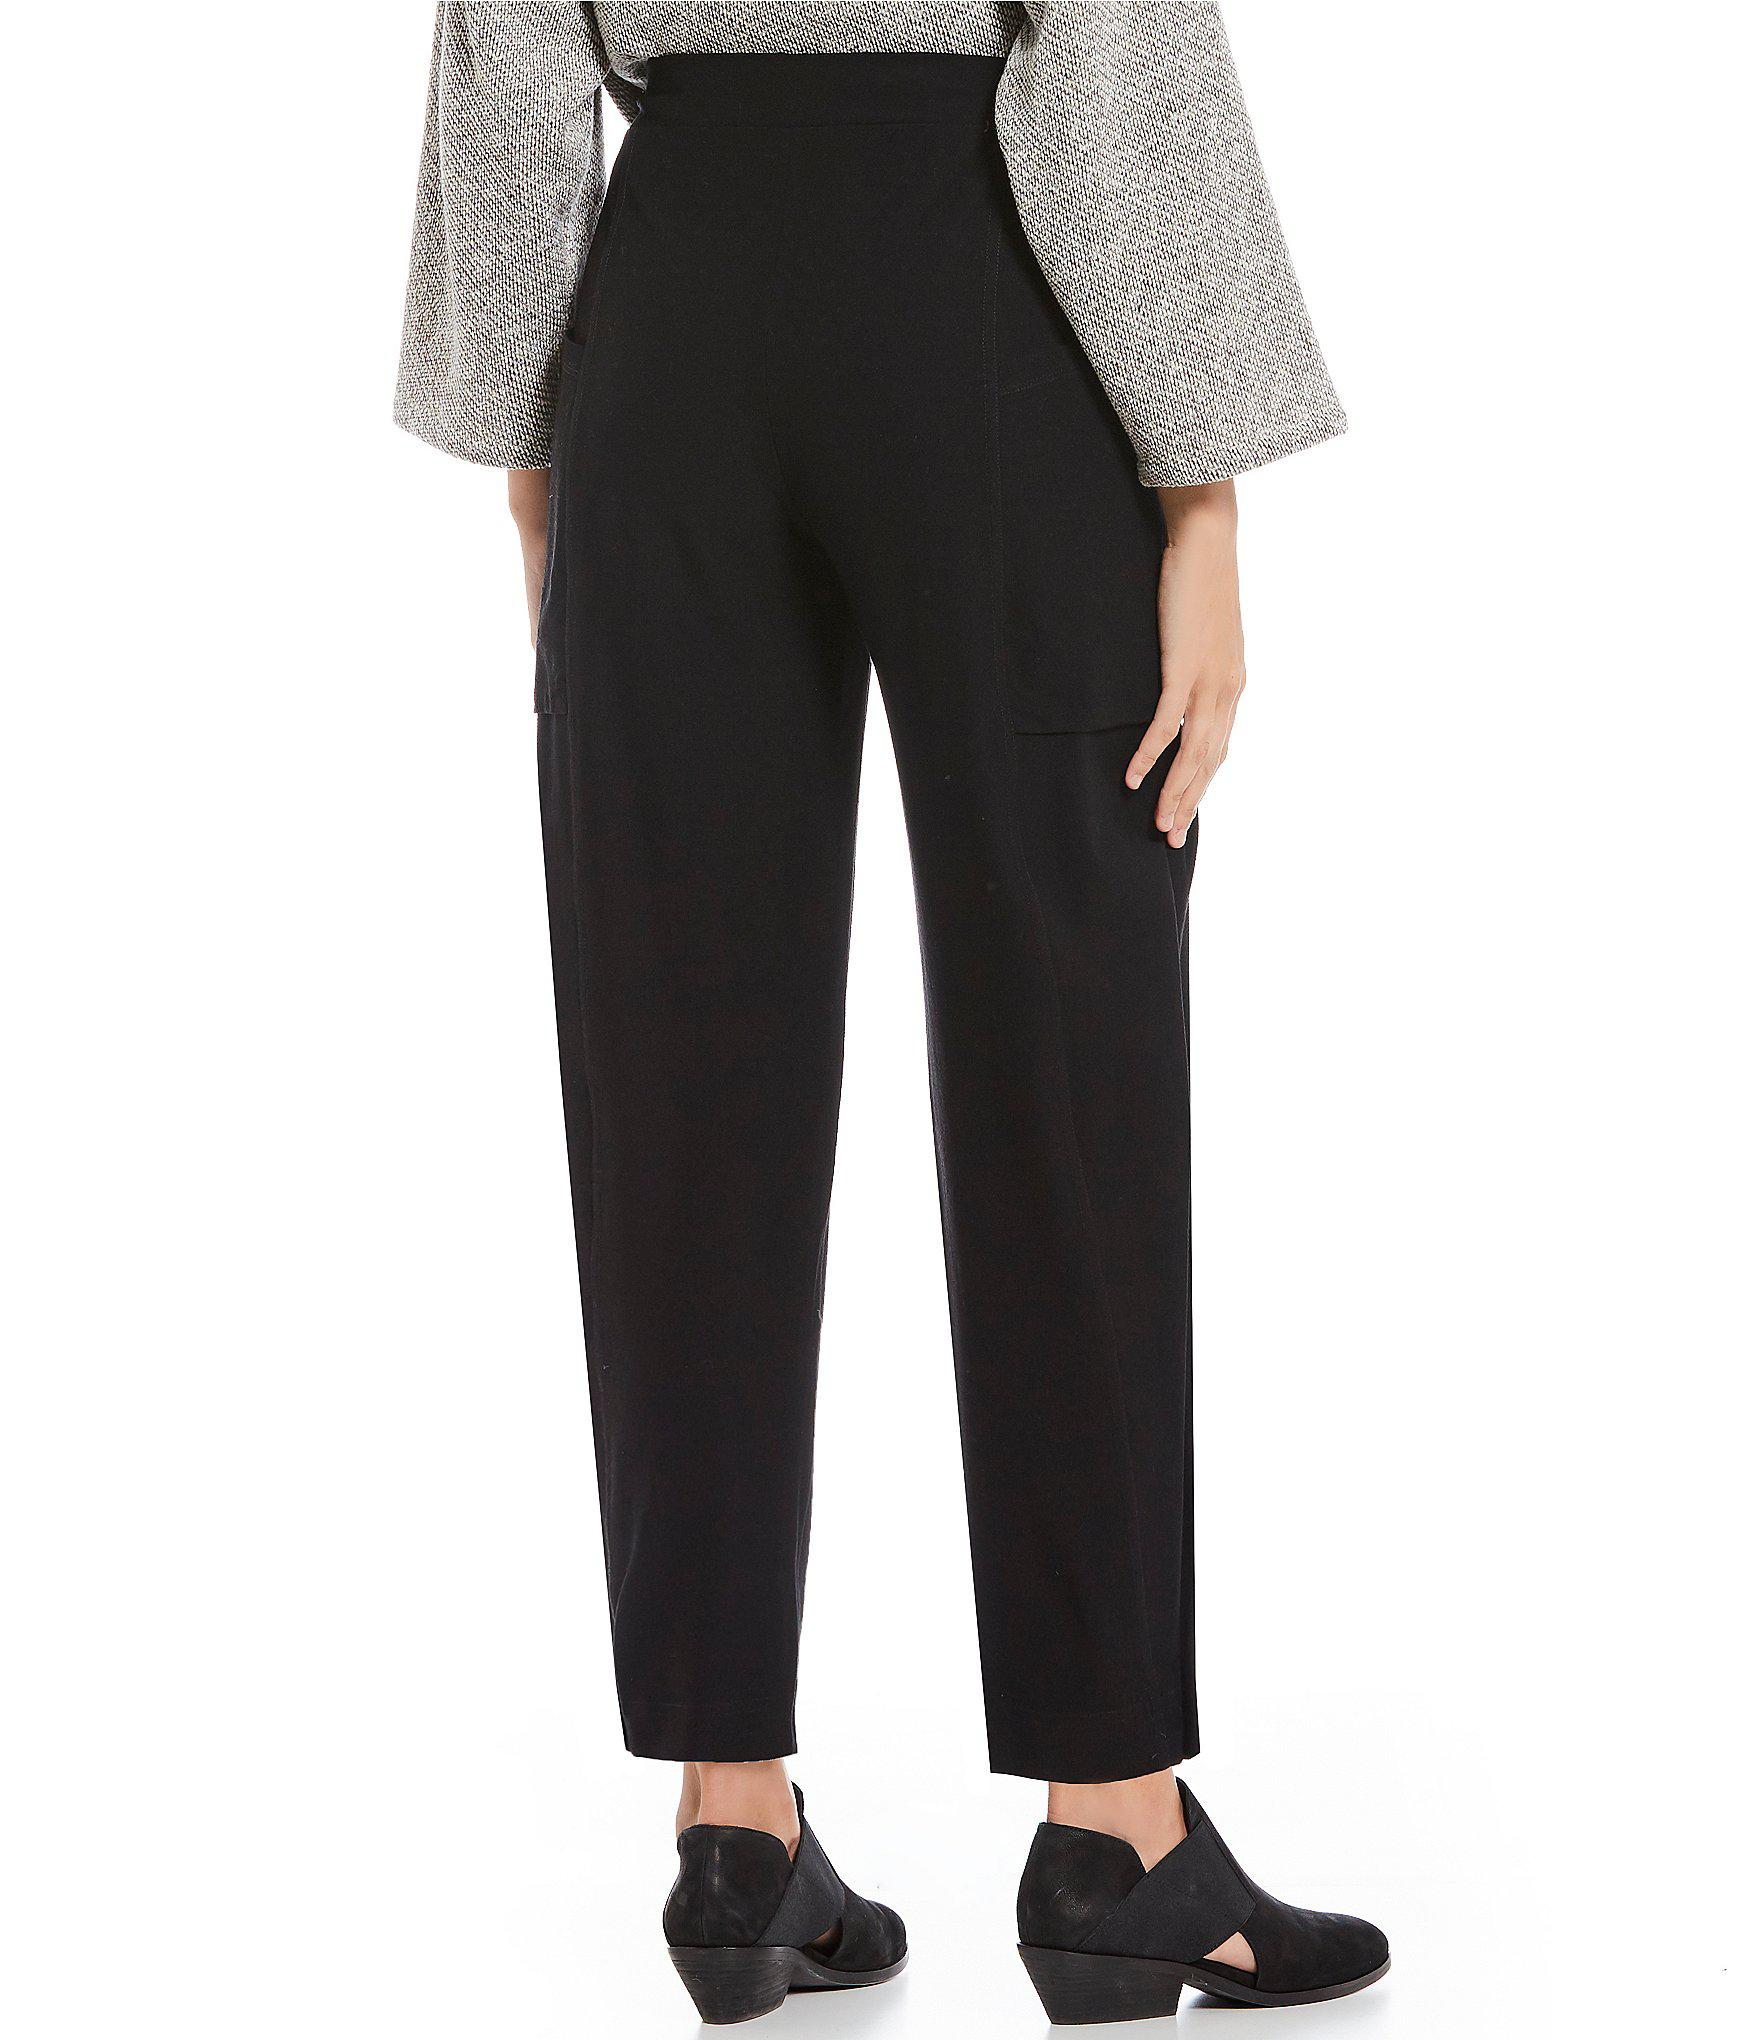 5653fae5e30 Eileen Fisher - Black Petite Size Pull-on Ankle Pants - Lyst. View  fullscreen